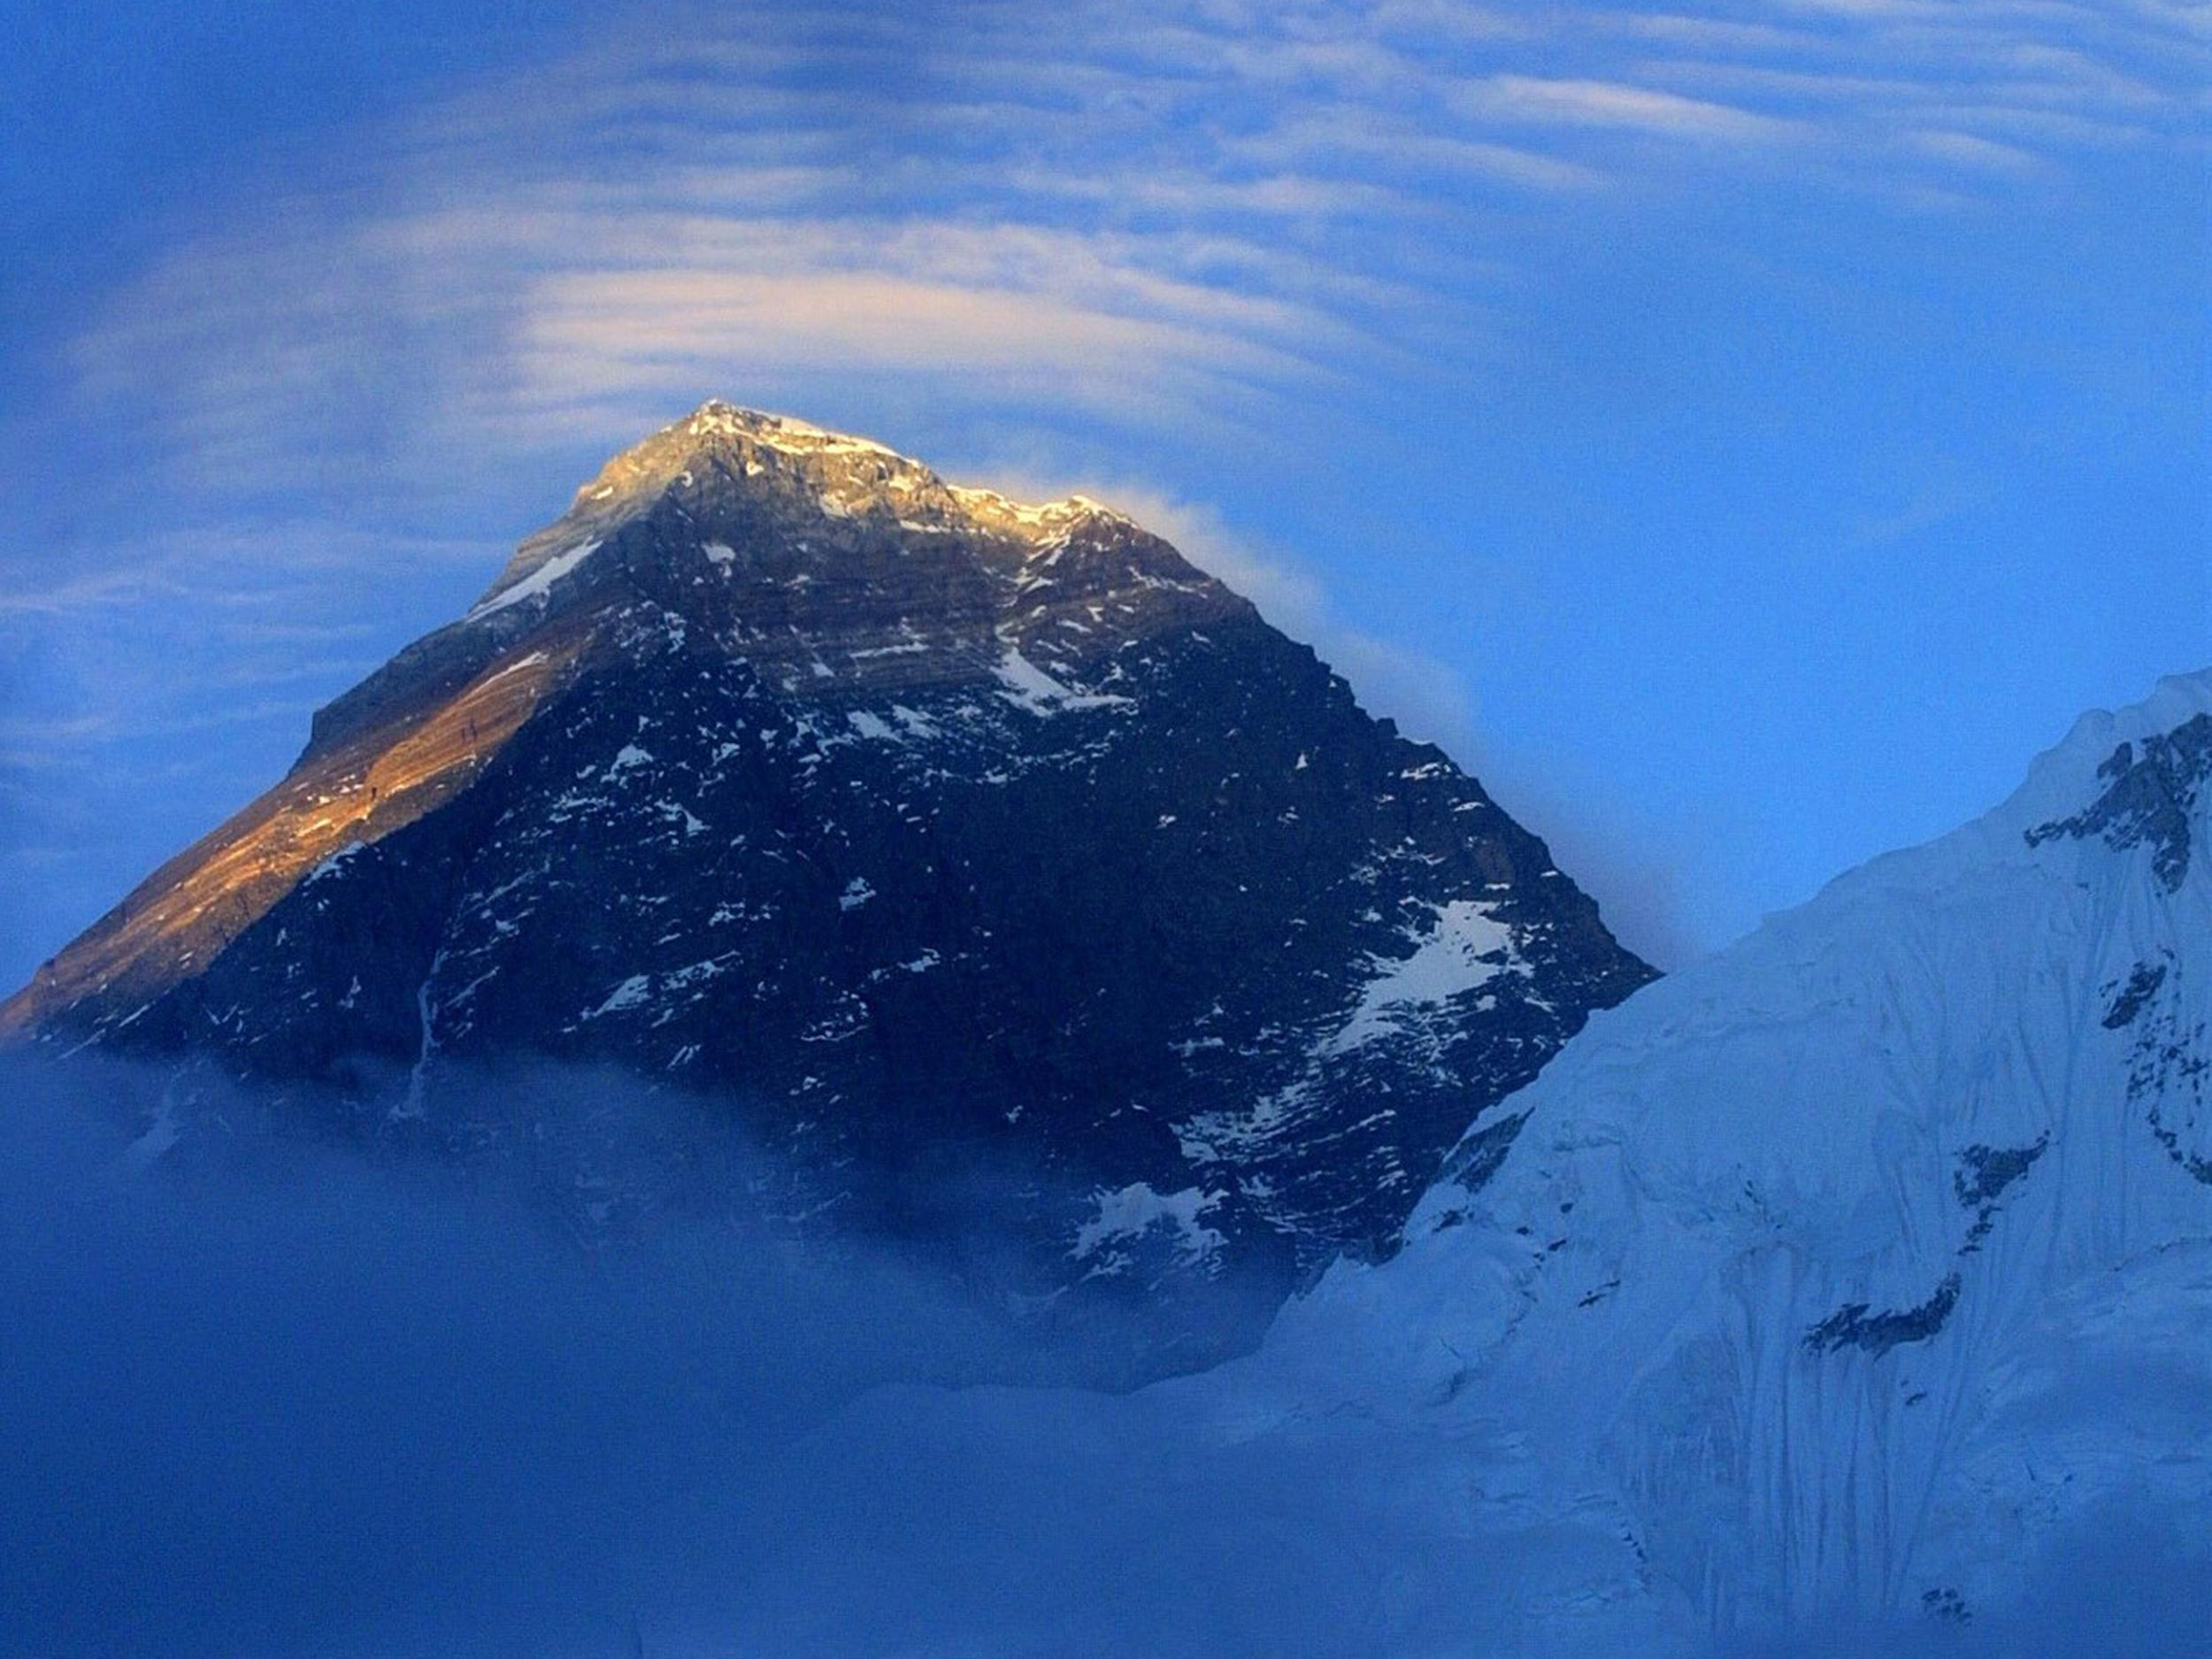 Image: Mount Everest